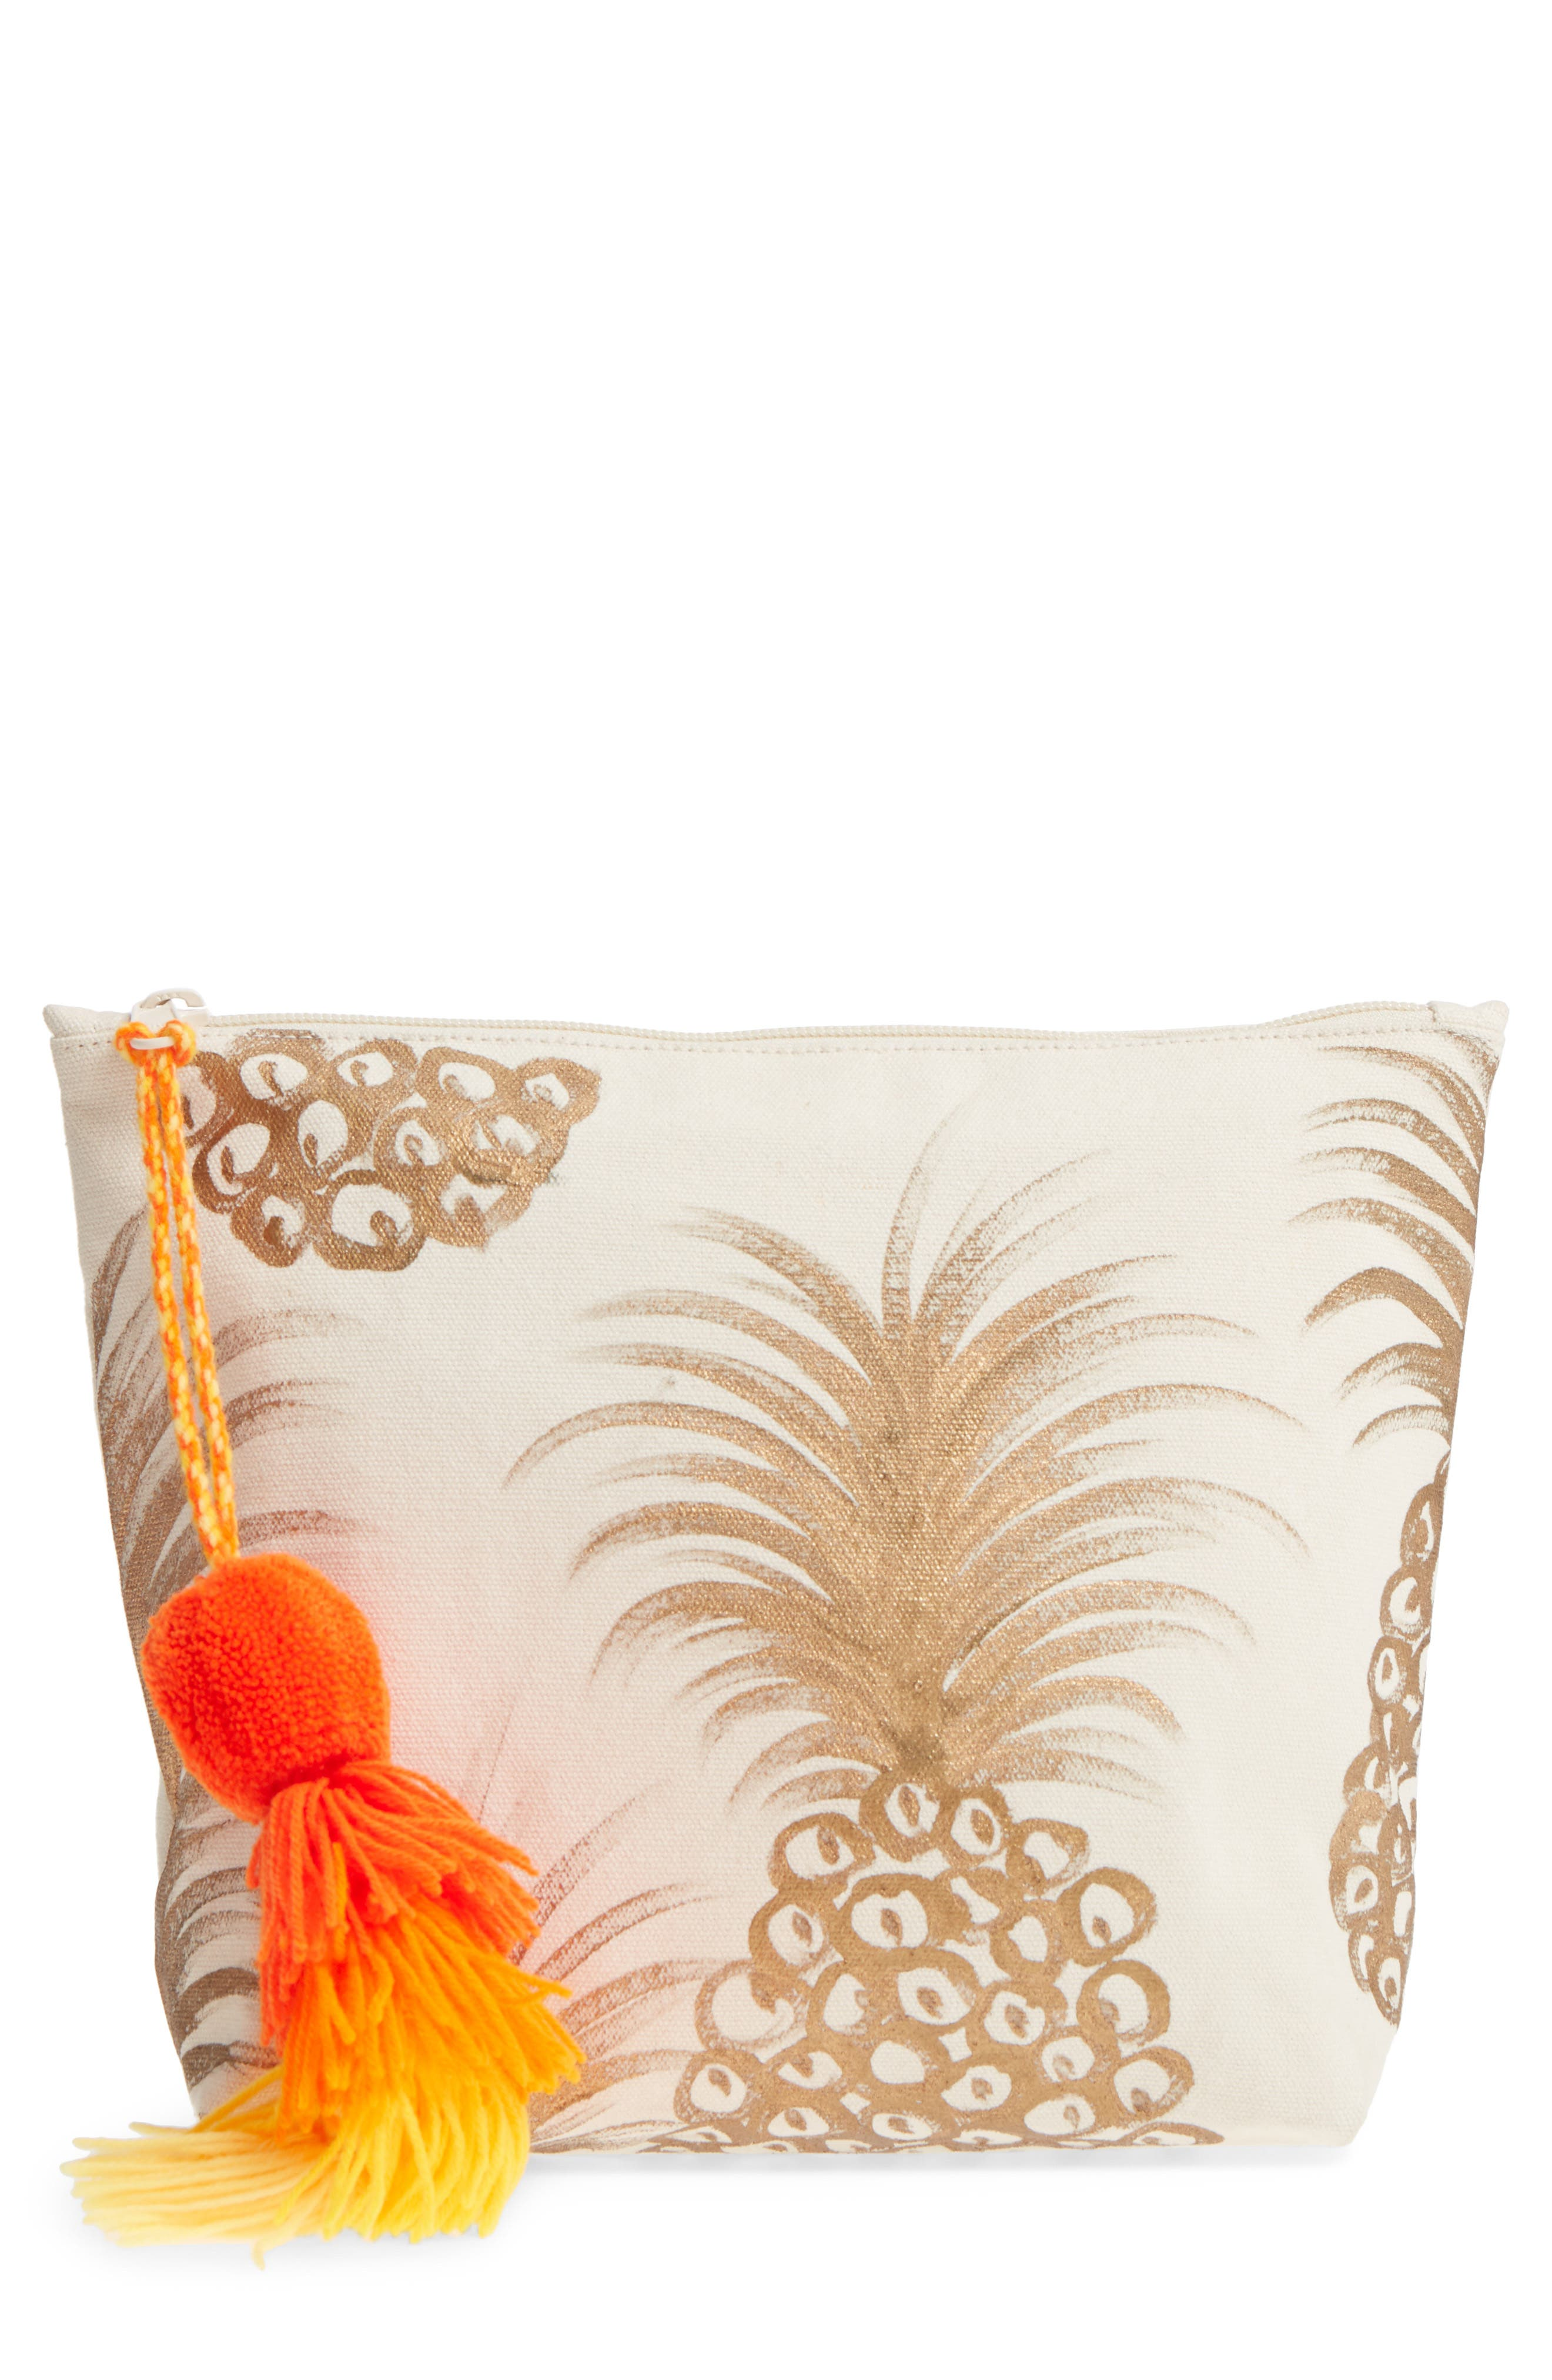 Tropicana Tassel Cosmetic Pouch,                             Main thumbnail 1, color,                             GOLD